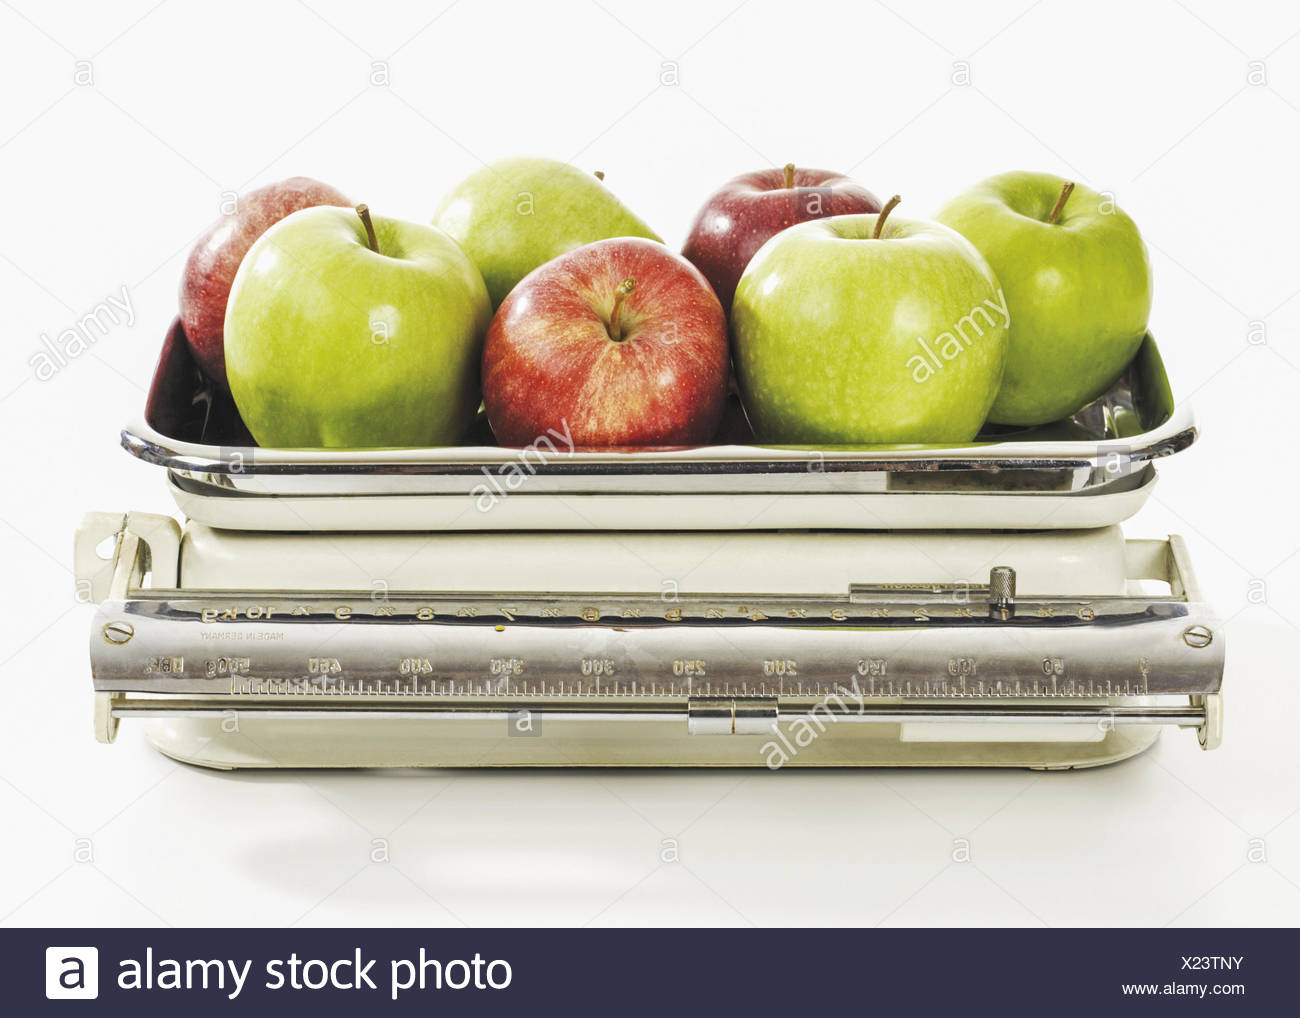 Weigh Scales Stock Photos Weigh Scales Stock Images Page 3 Alamy